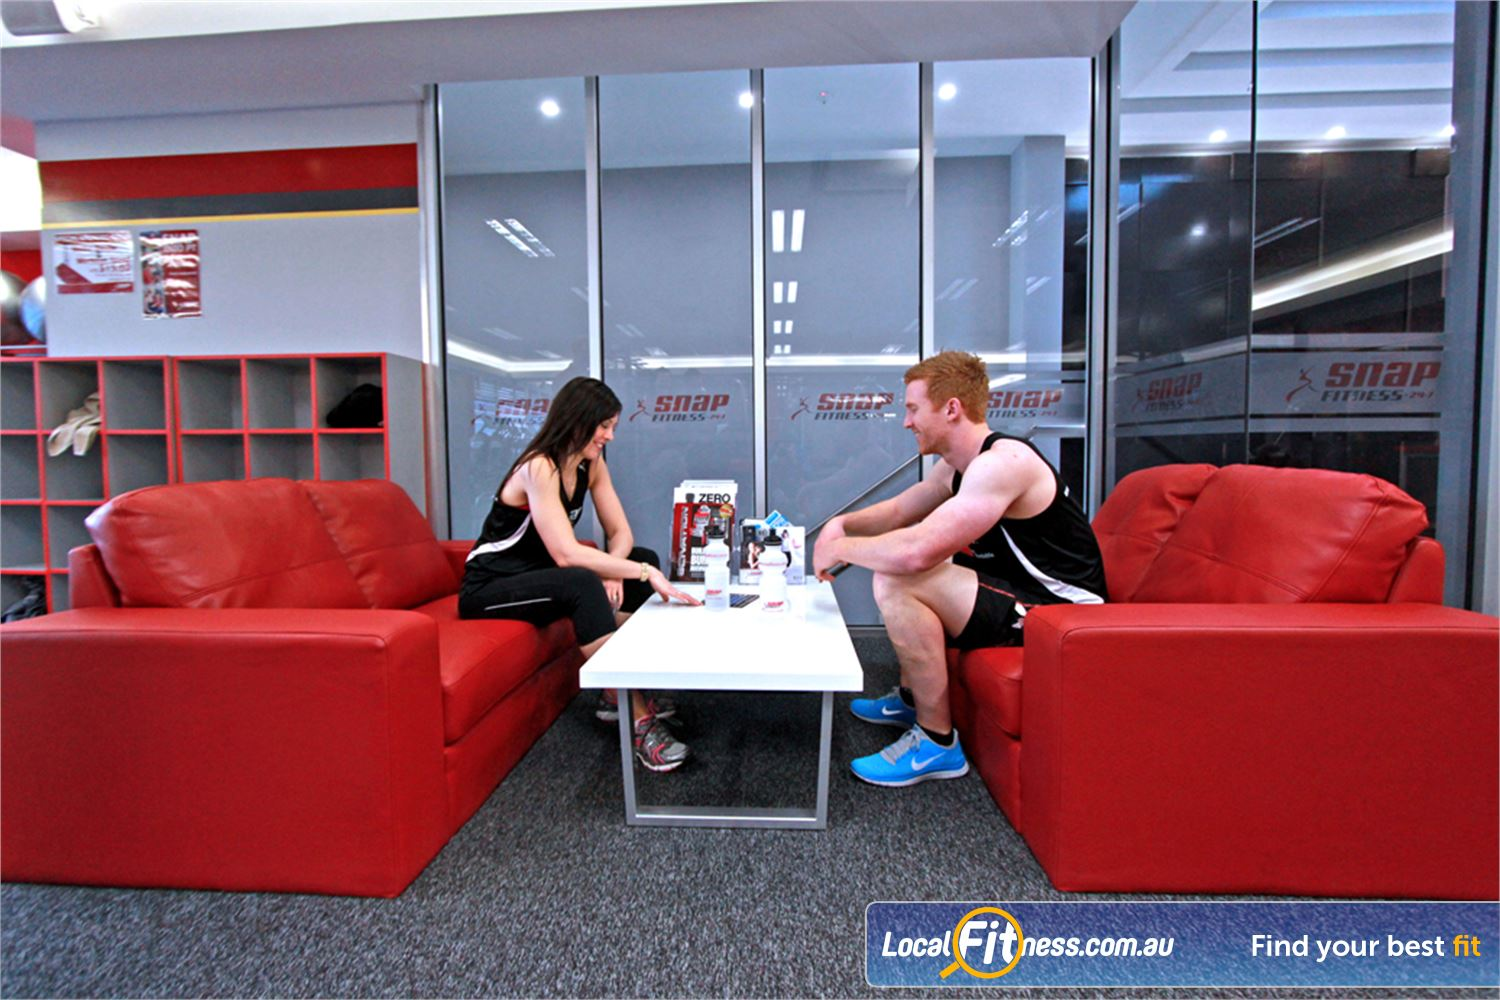 Snap Fitness Jindalee Enjoy 24 hour comfort in our members lounge.